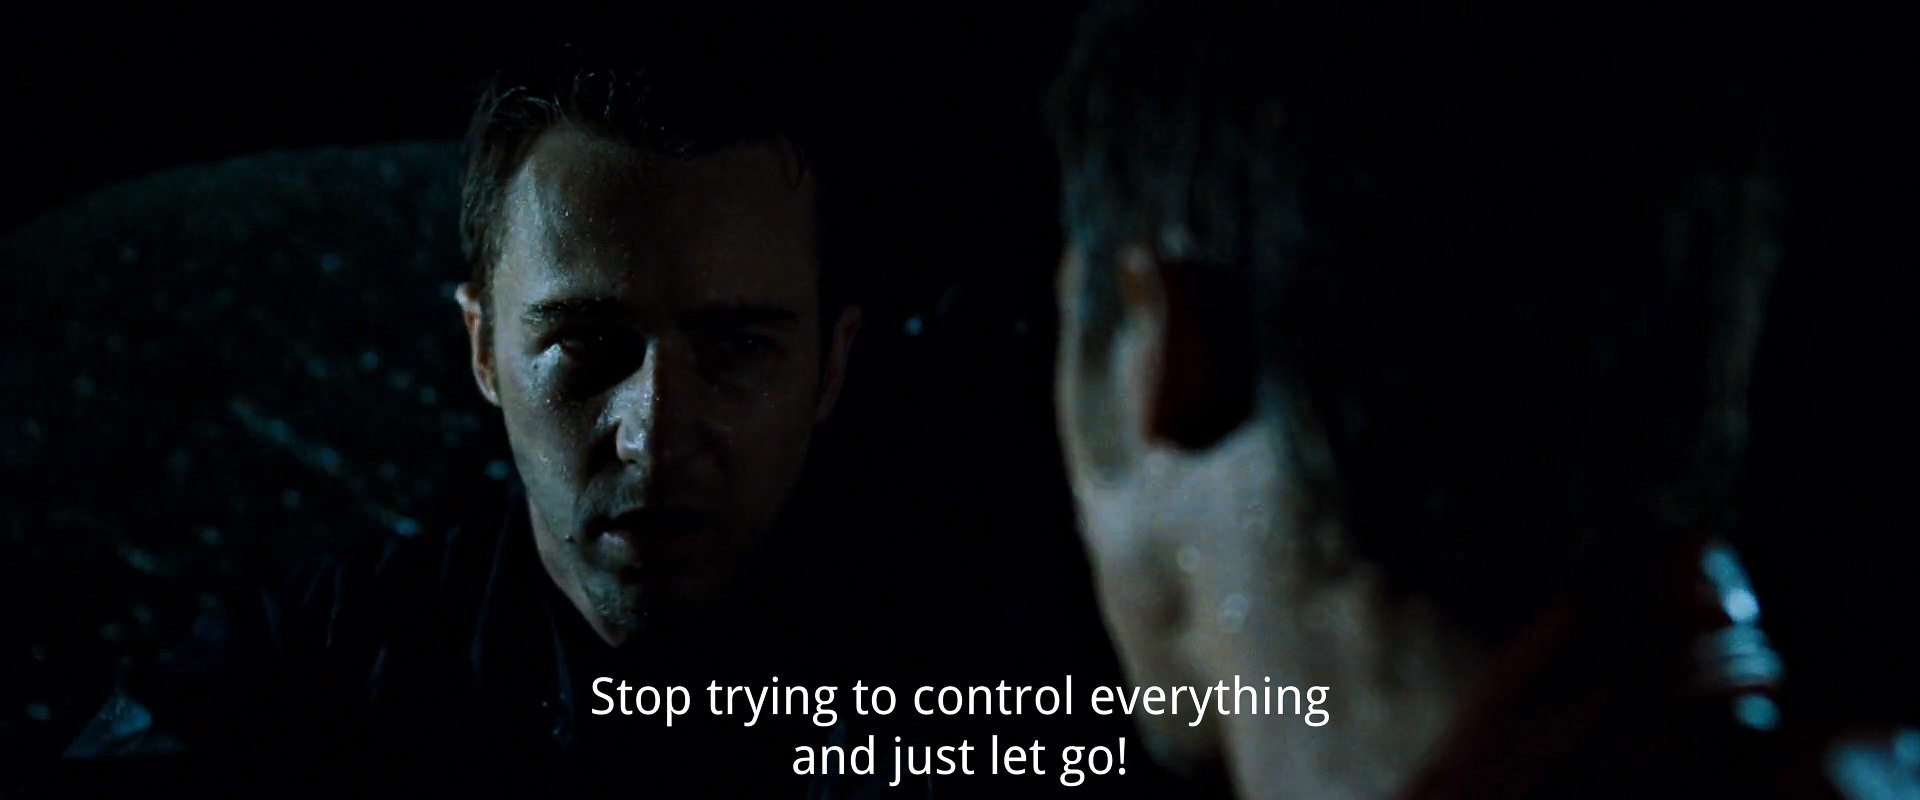 fight club cinematography life lessons-25.jpg